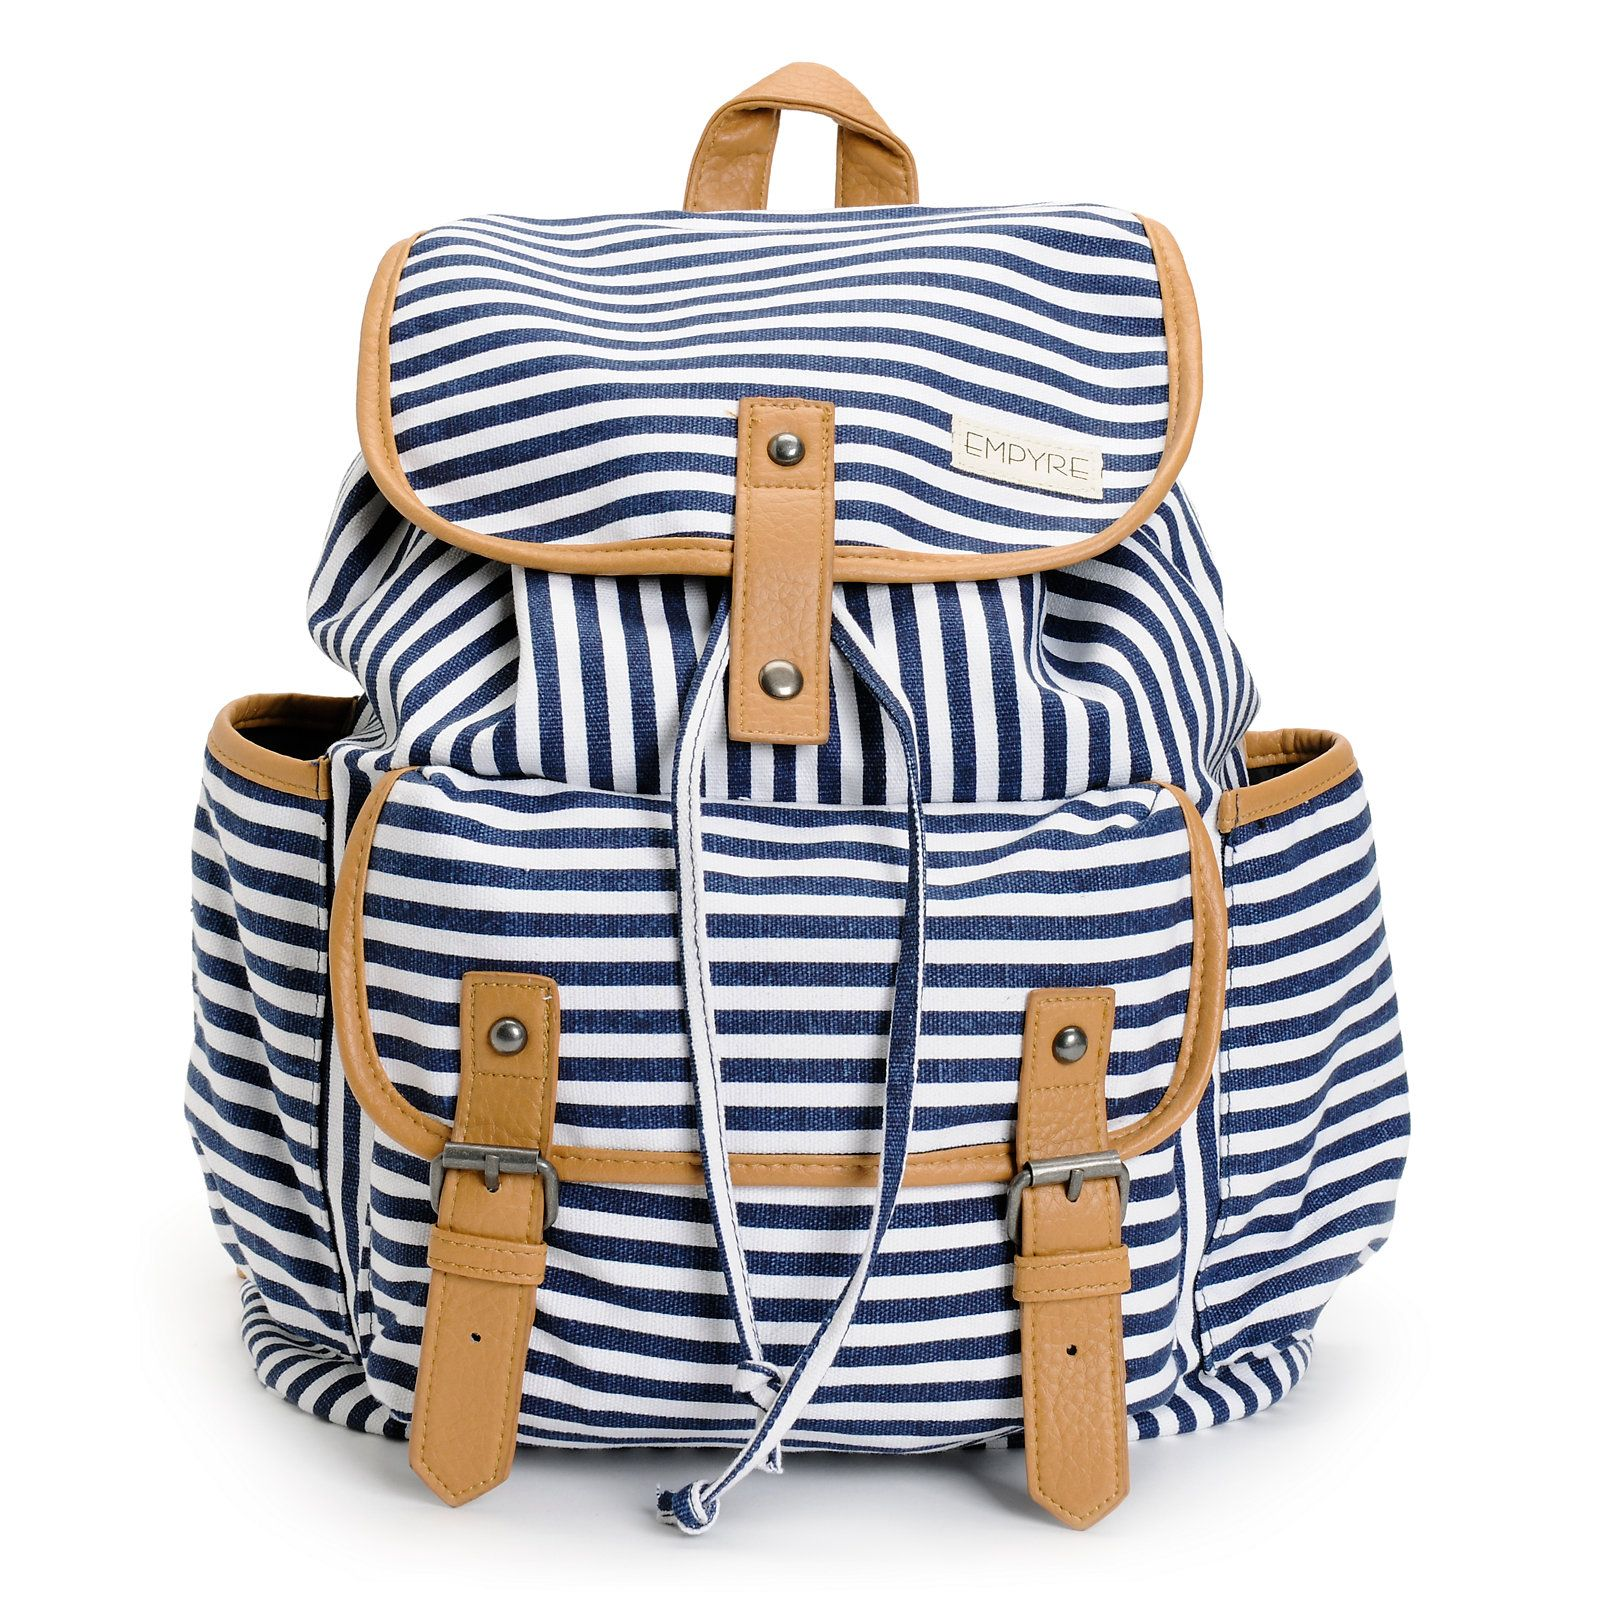 c65902d7a8 Empyre Emily Navy Stripe Rucksack Backpack